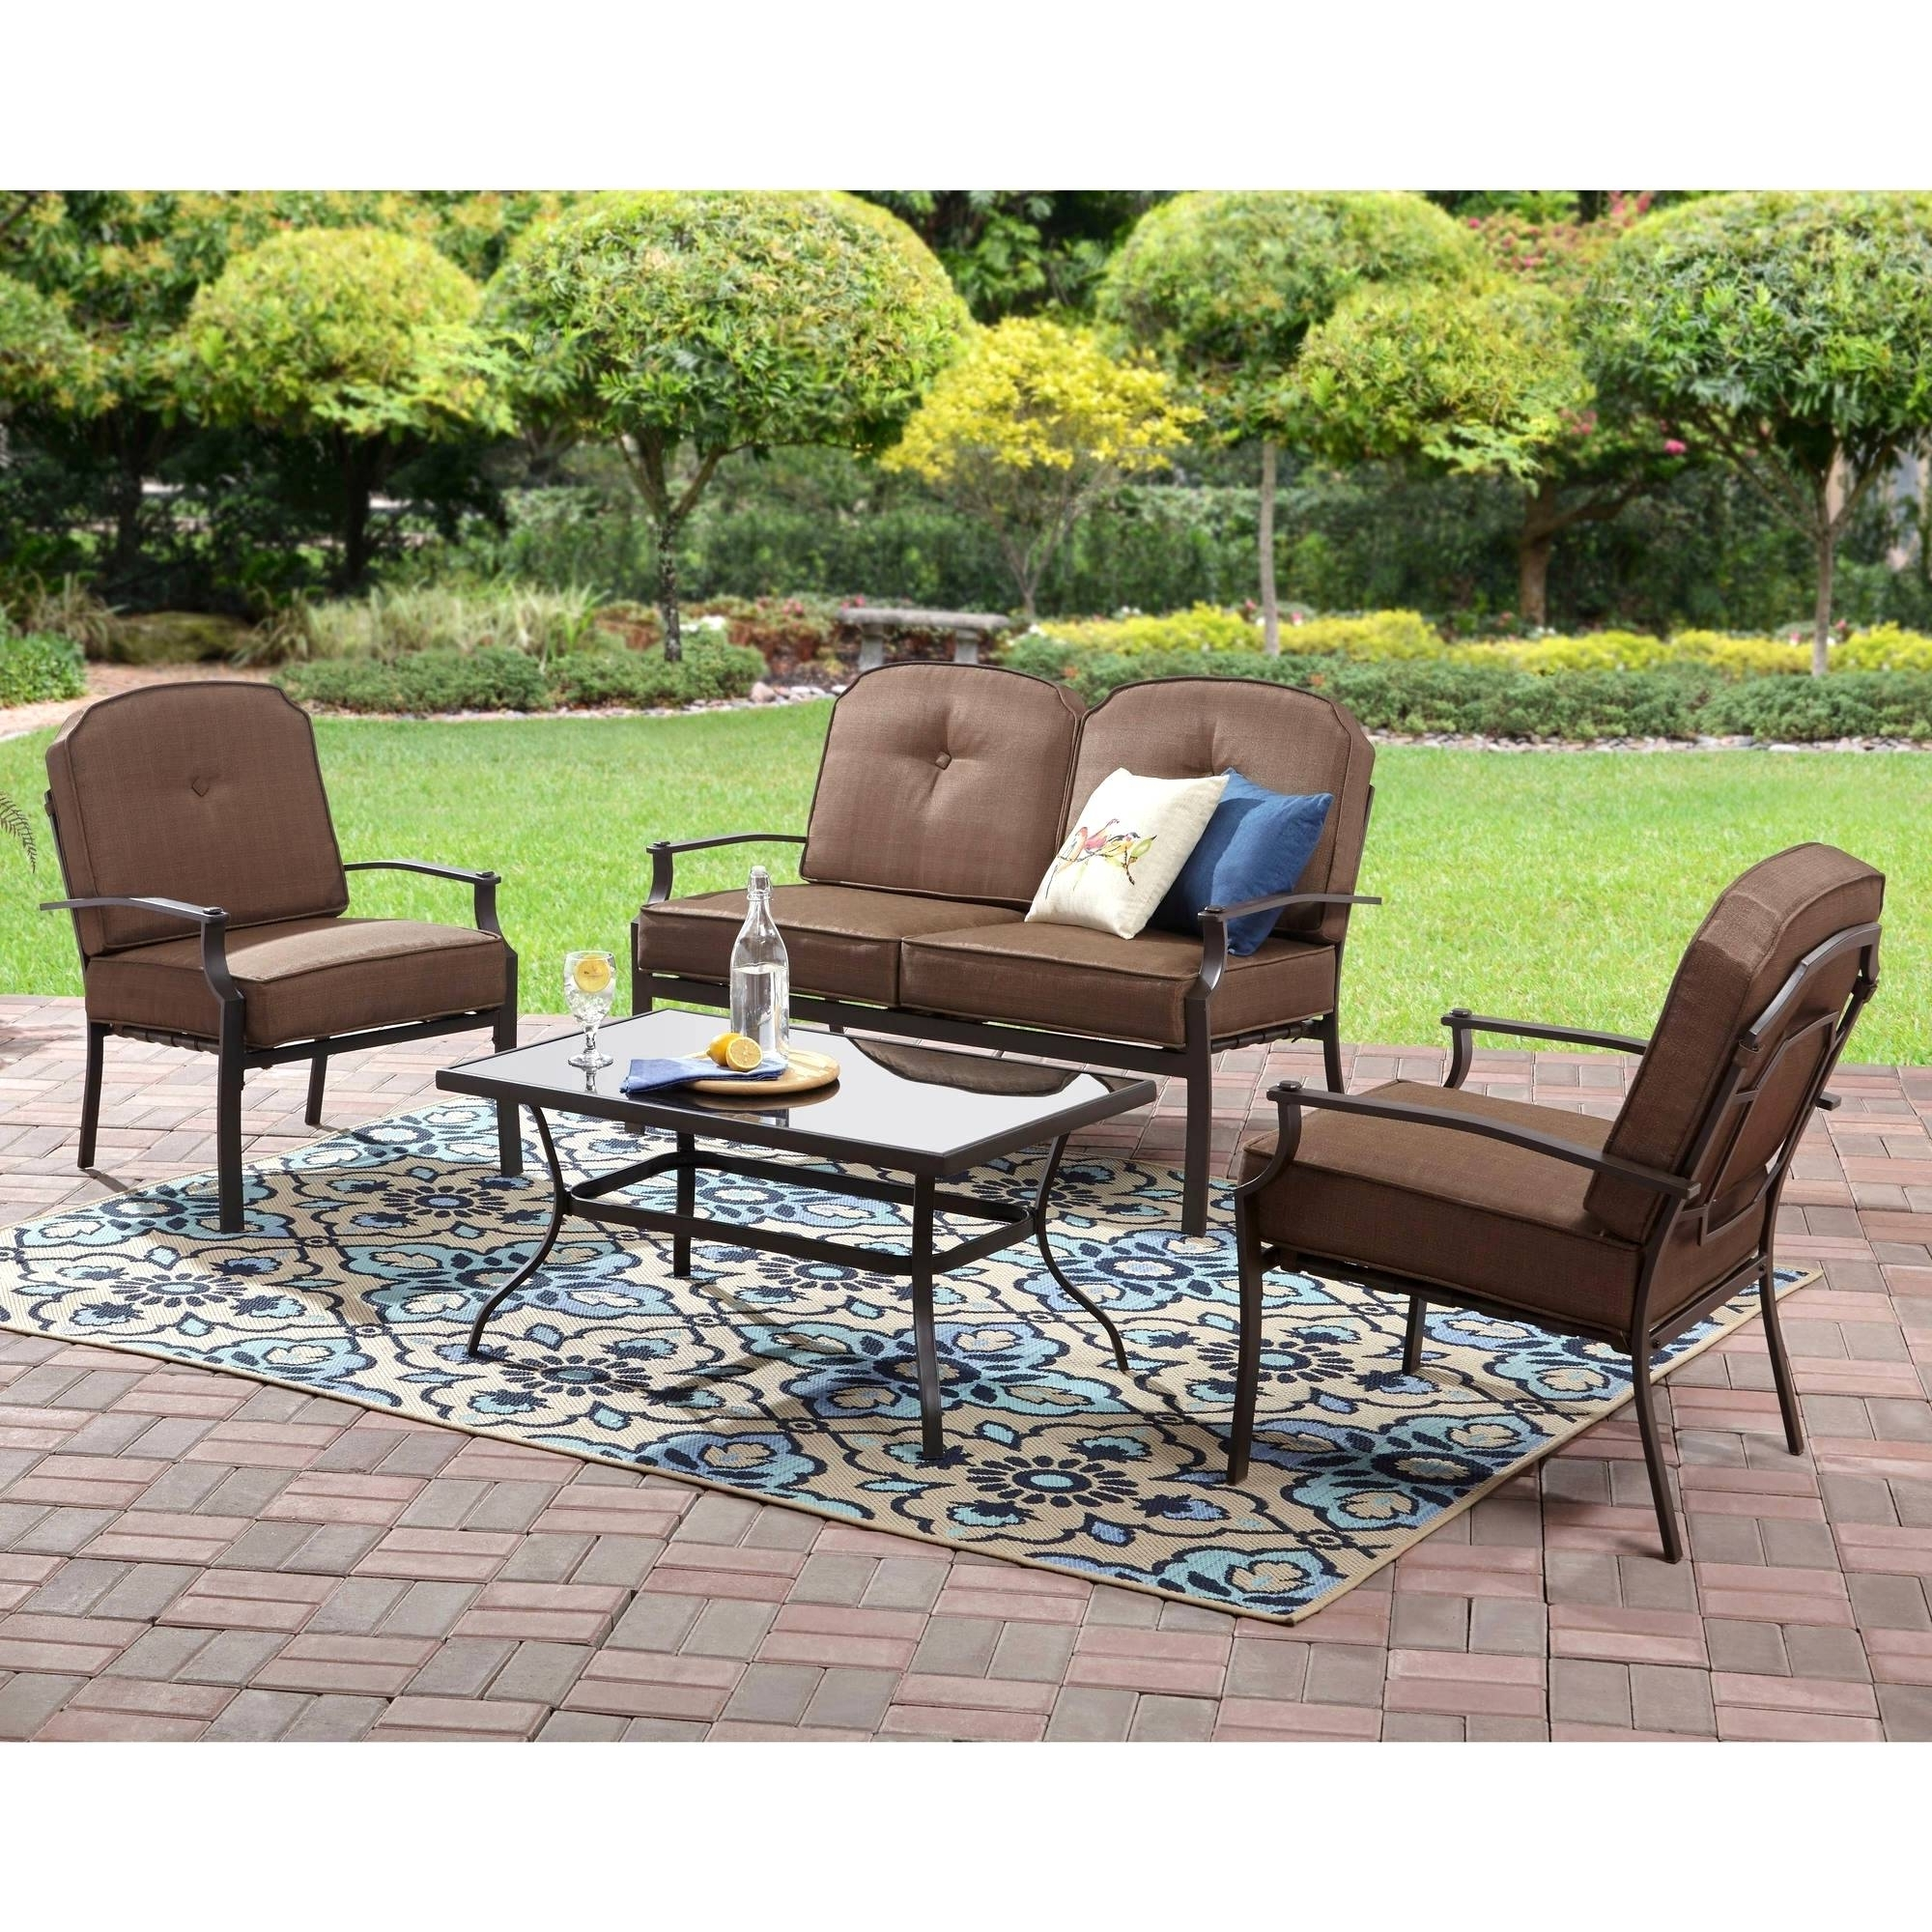 Preferred Outdoor : Outdoor Patio Clearance Inexpensive Patio Sets Patio Pertaining To Inexpensive Patio Conversation Sets (View 13 of 15)